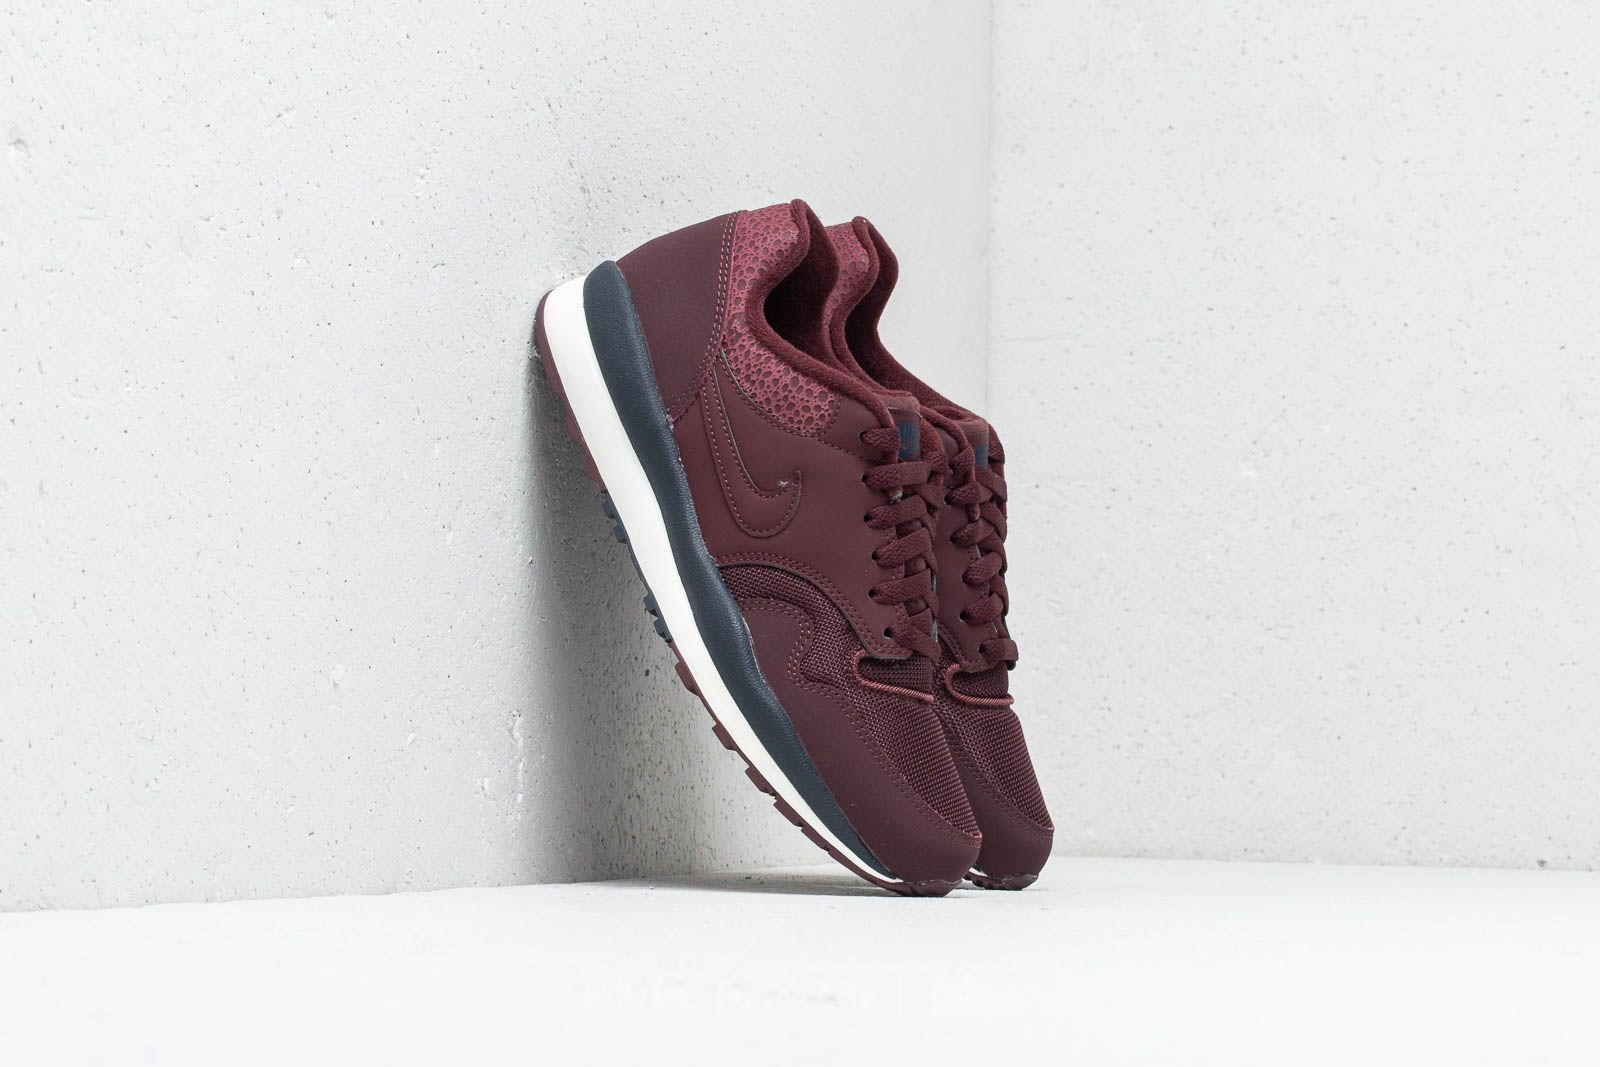 Nike Air Safari Burgundy Crush/ Burgundy Crush